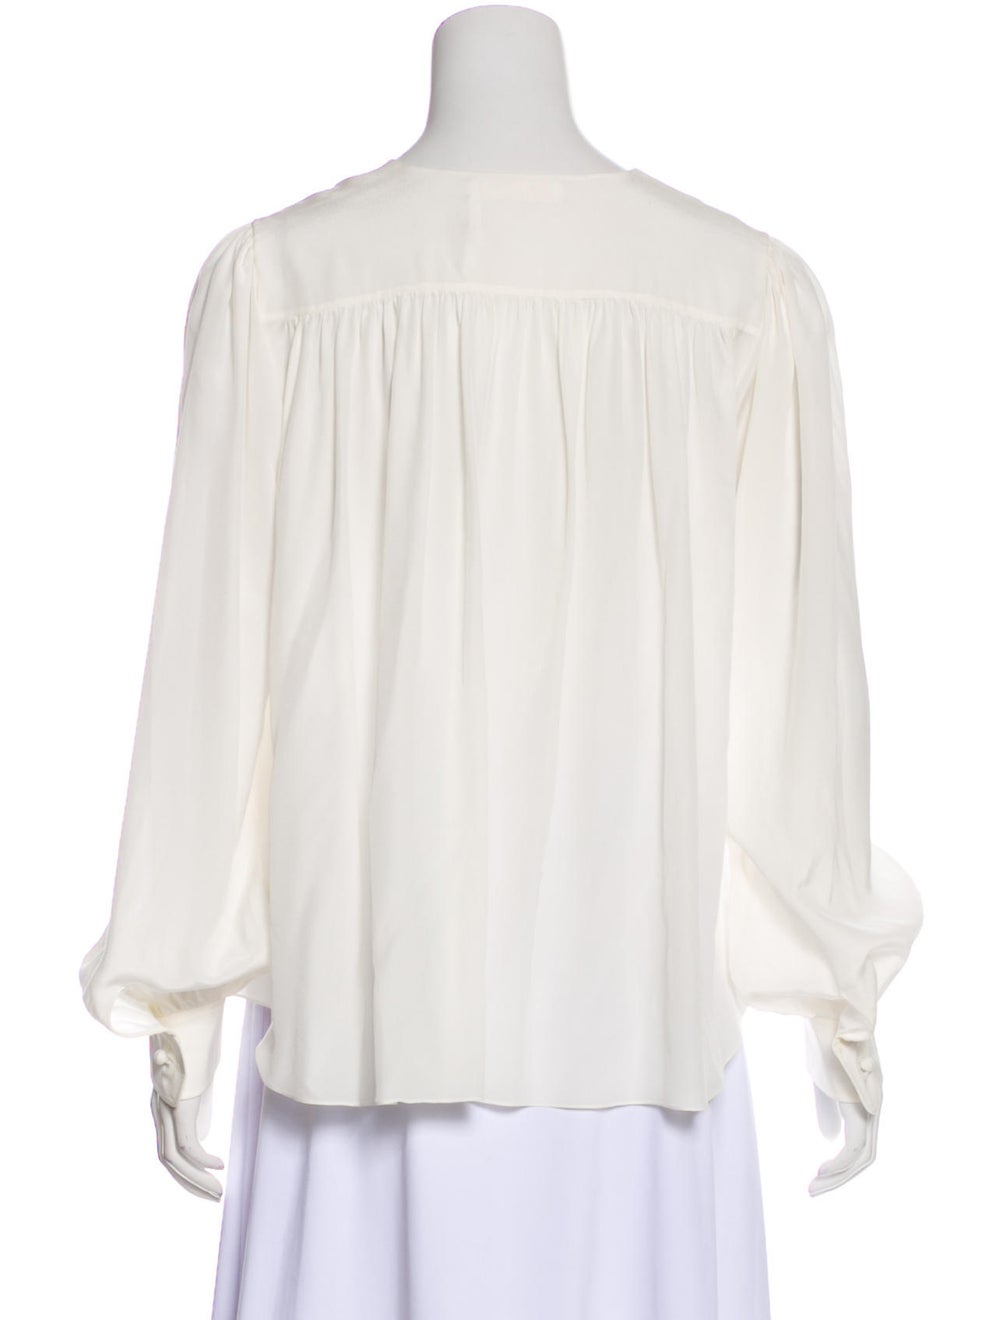 Chloé Silk Long Sleeve Blouse White - image 3